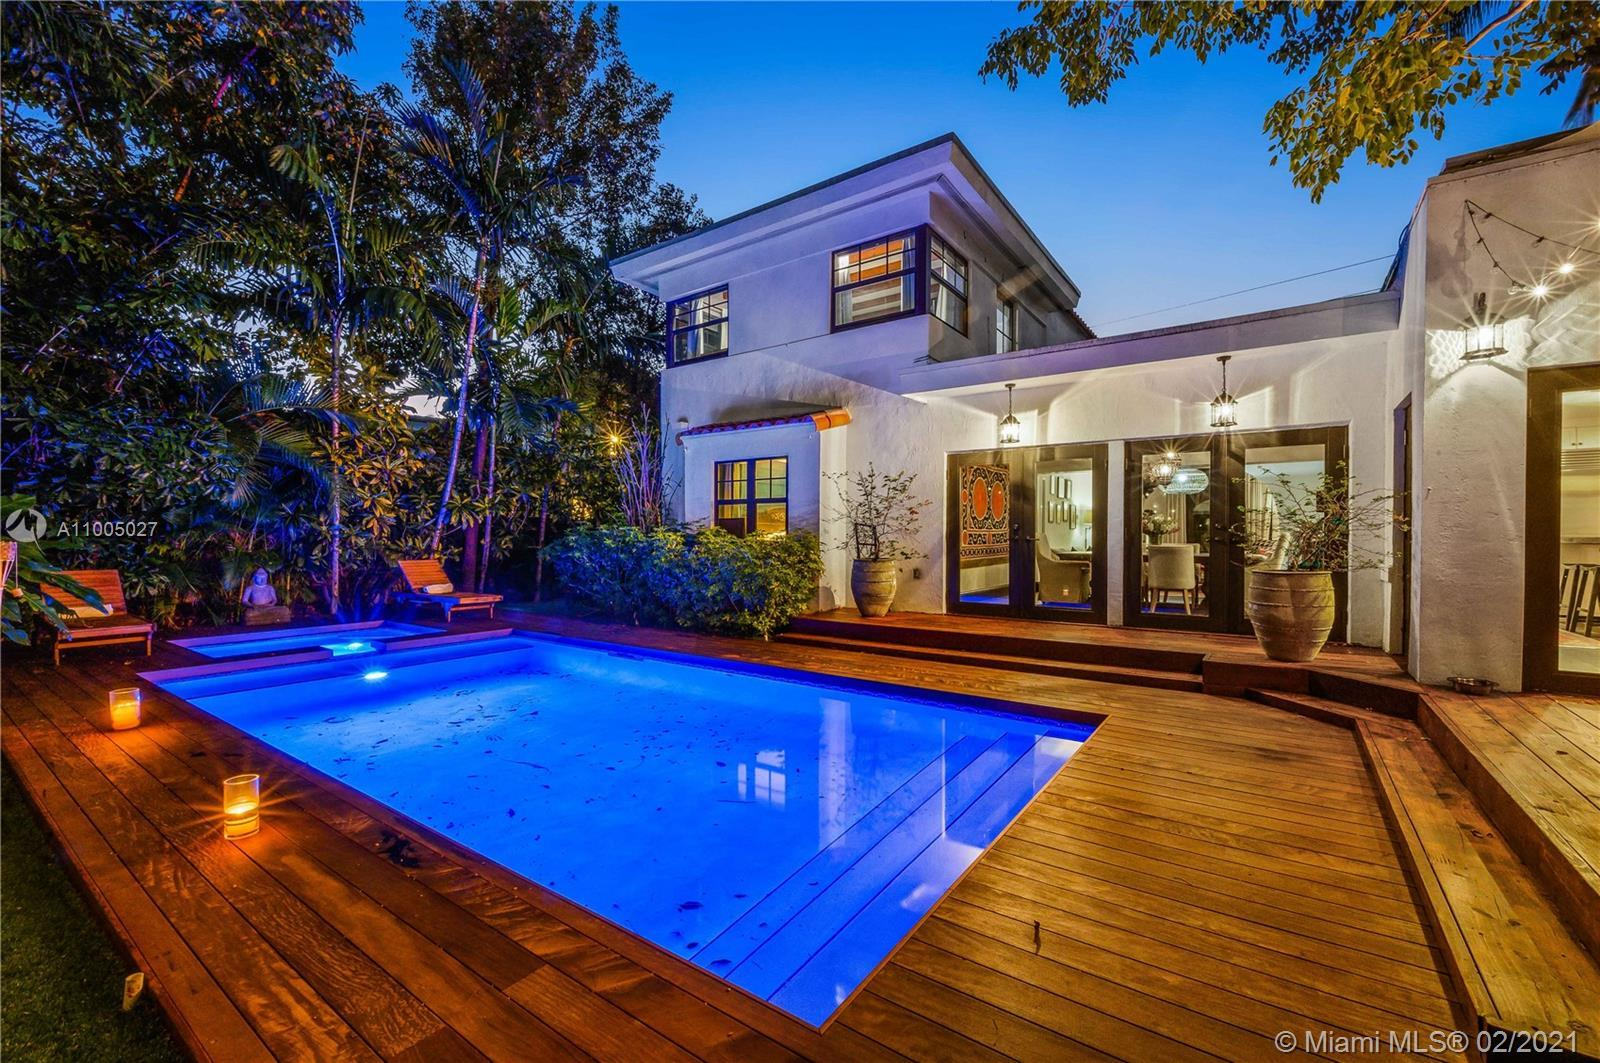 Located in the heart of Miami Beach. This dreamy Mediterranean 2 story home is in the most sought-af